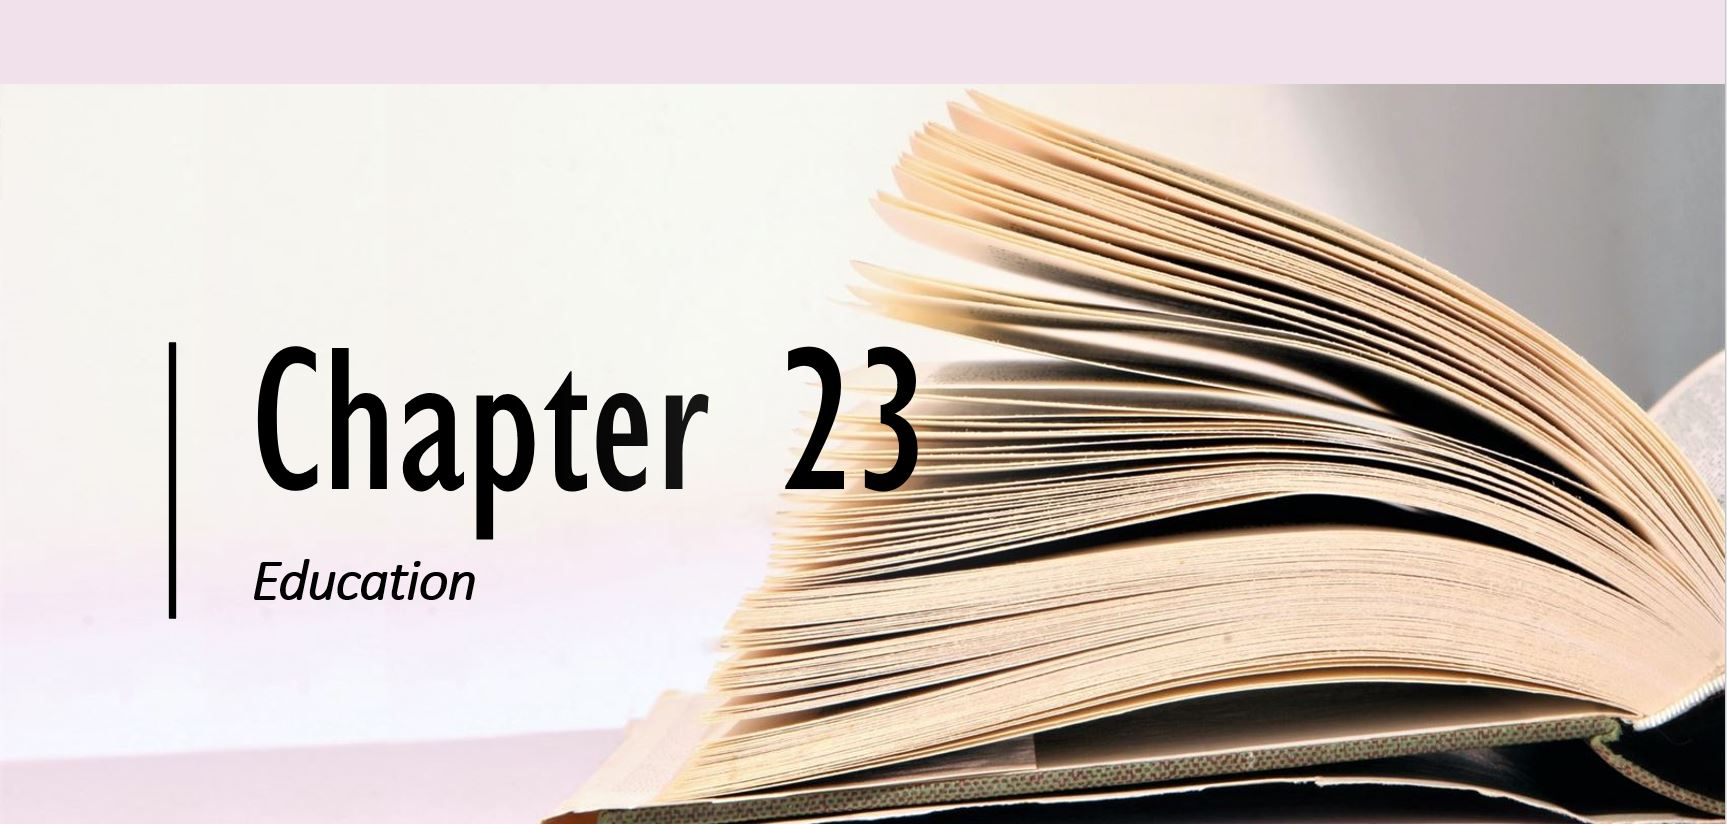 Chapter 23; Education (Header with a book on the table as a background)